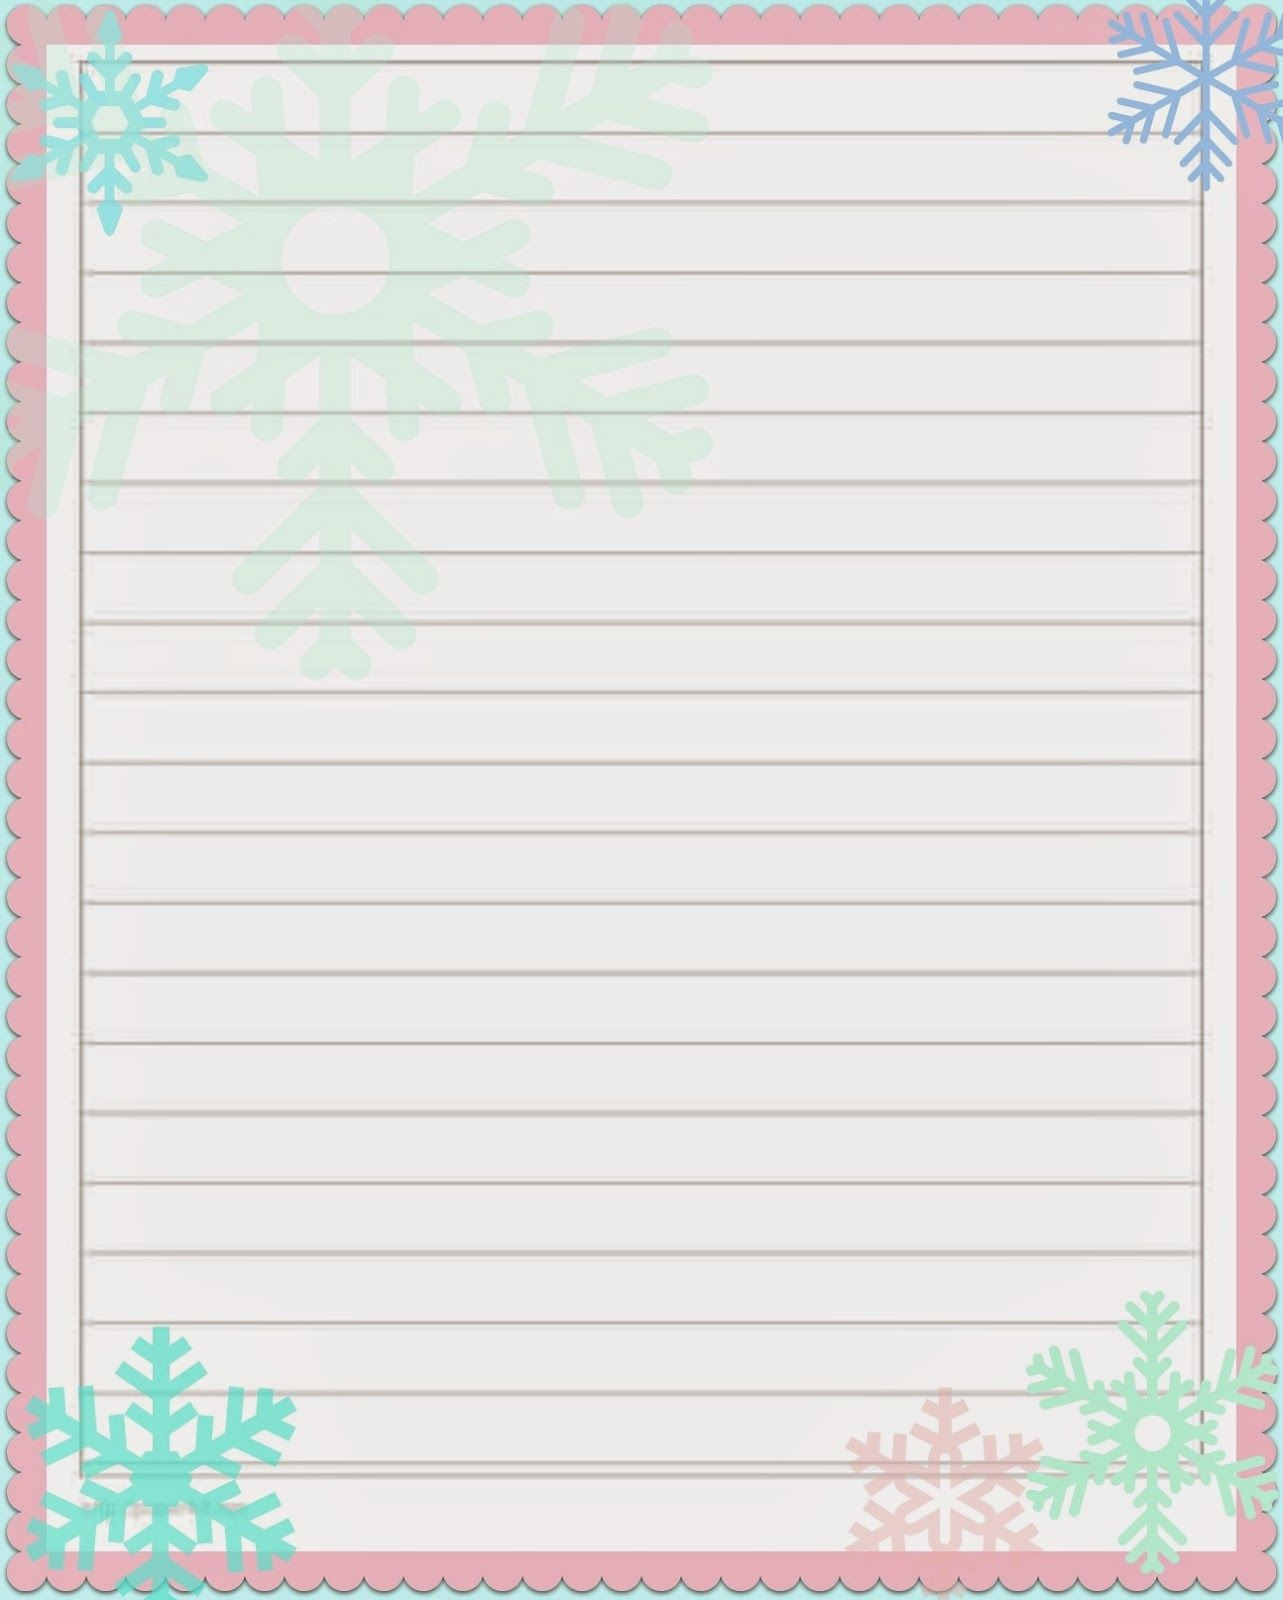 Lined Holiday Printable Paper 5X8 | Best Photos Of Cute Printable - Free Printable Christmas Writing Paper With Lines